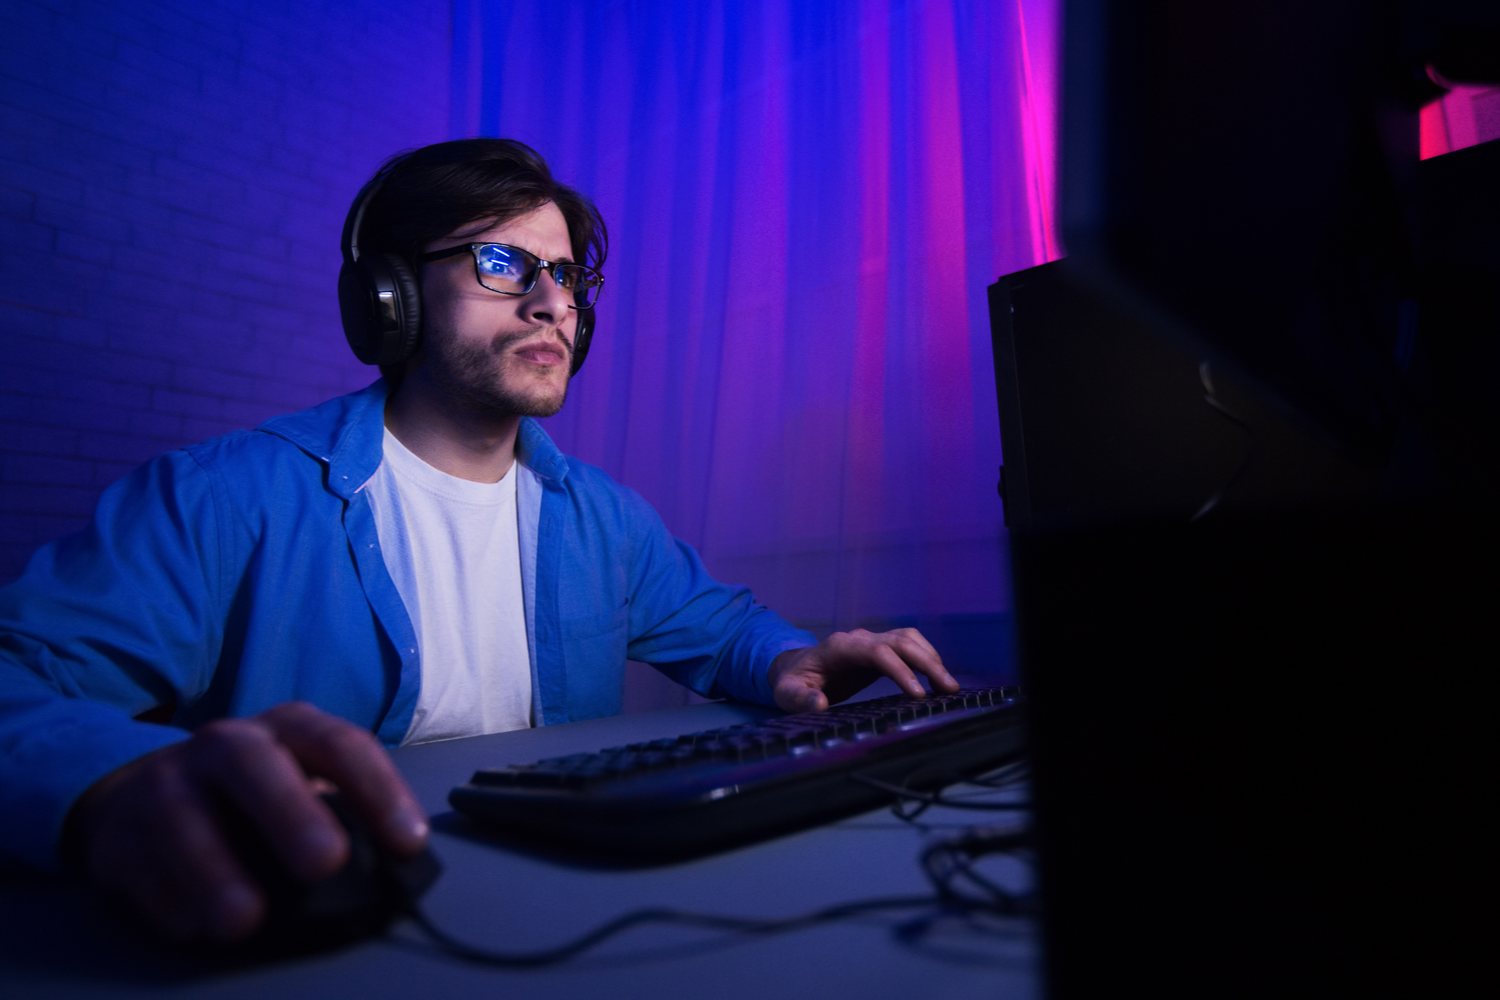 Man with Blue Light Glasses Using Computer